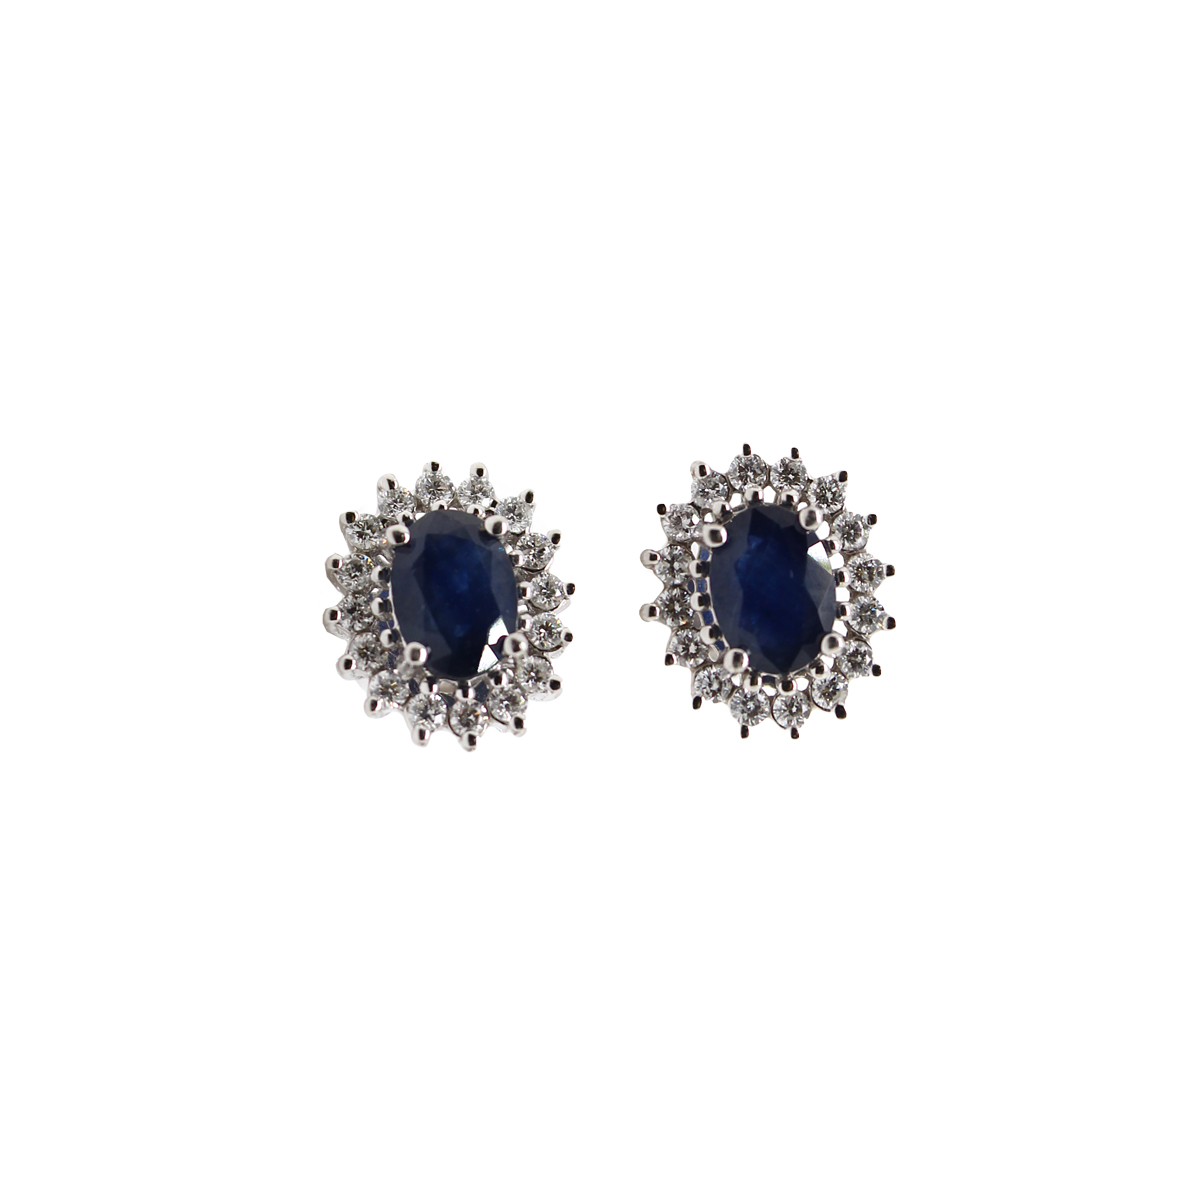 Vintage 14 Karat White Gold Oval Blue Sapphire and Diamond Earrings